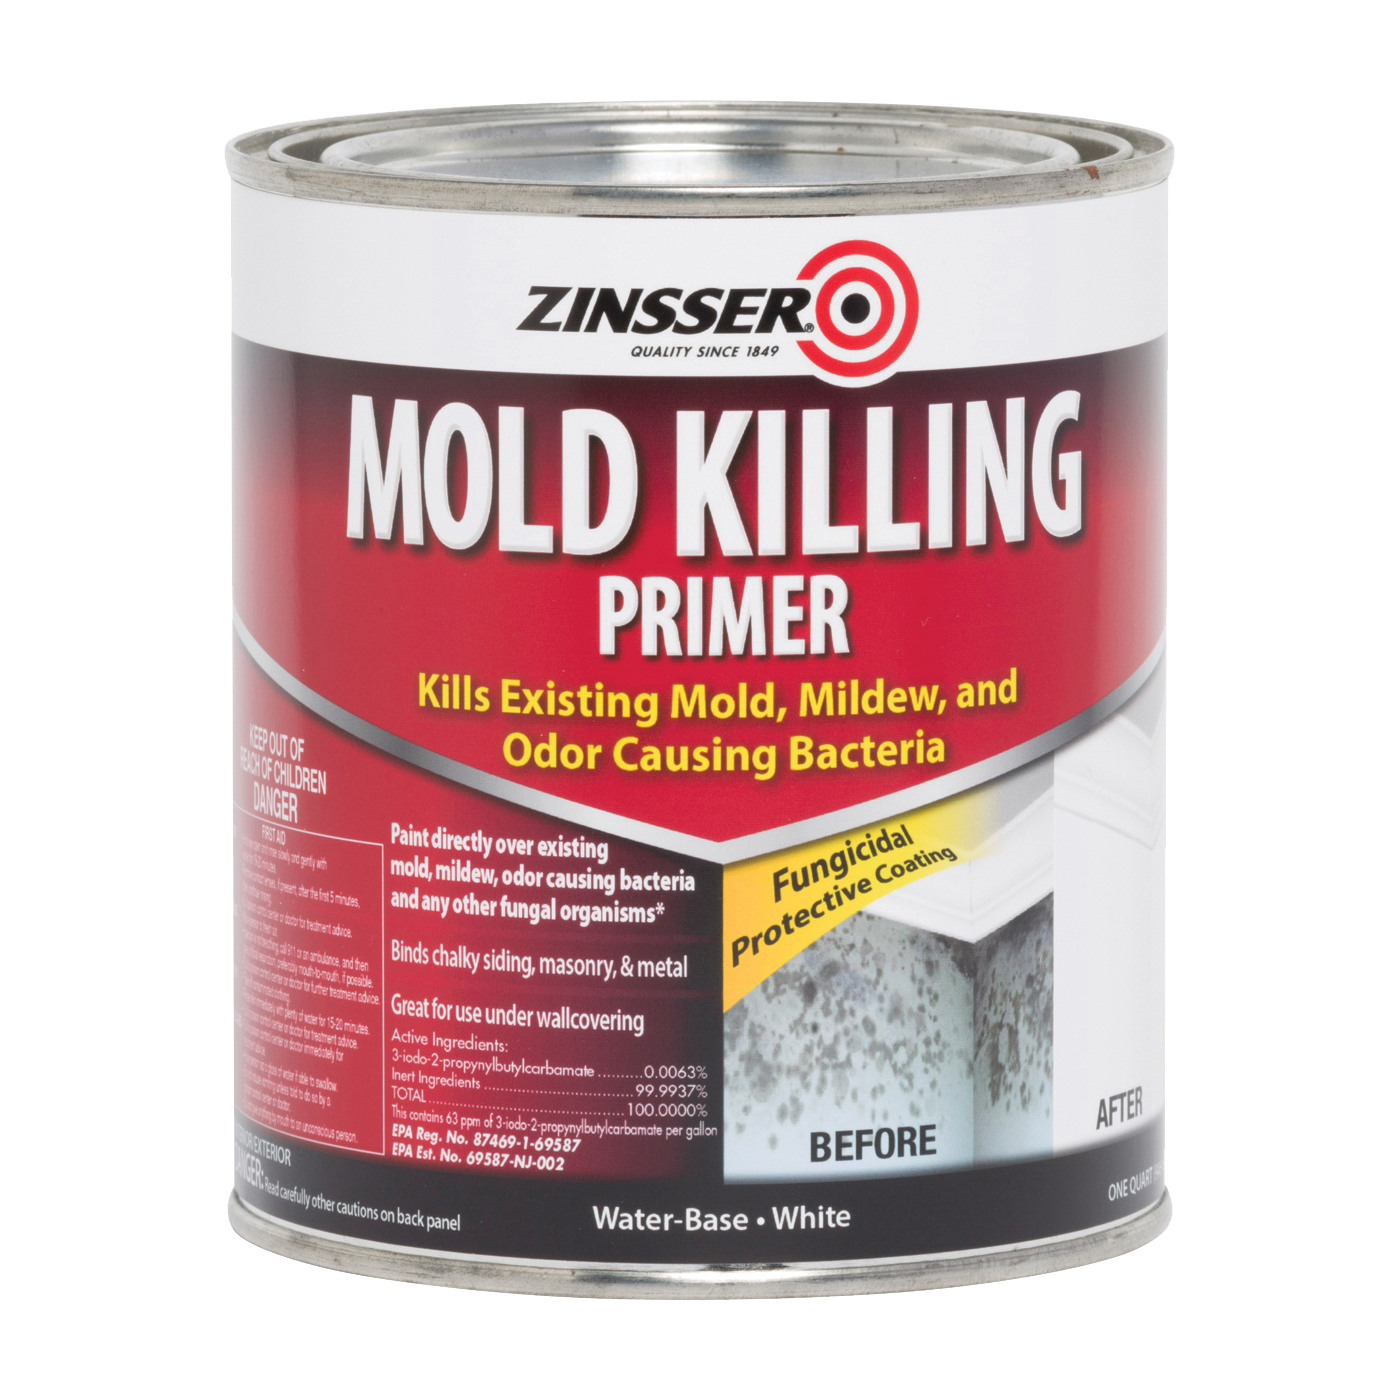 Picture of ZINSSER 276087 Mold Killing Primer, Flat, White, 1 qt, Can